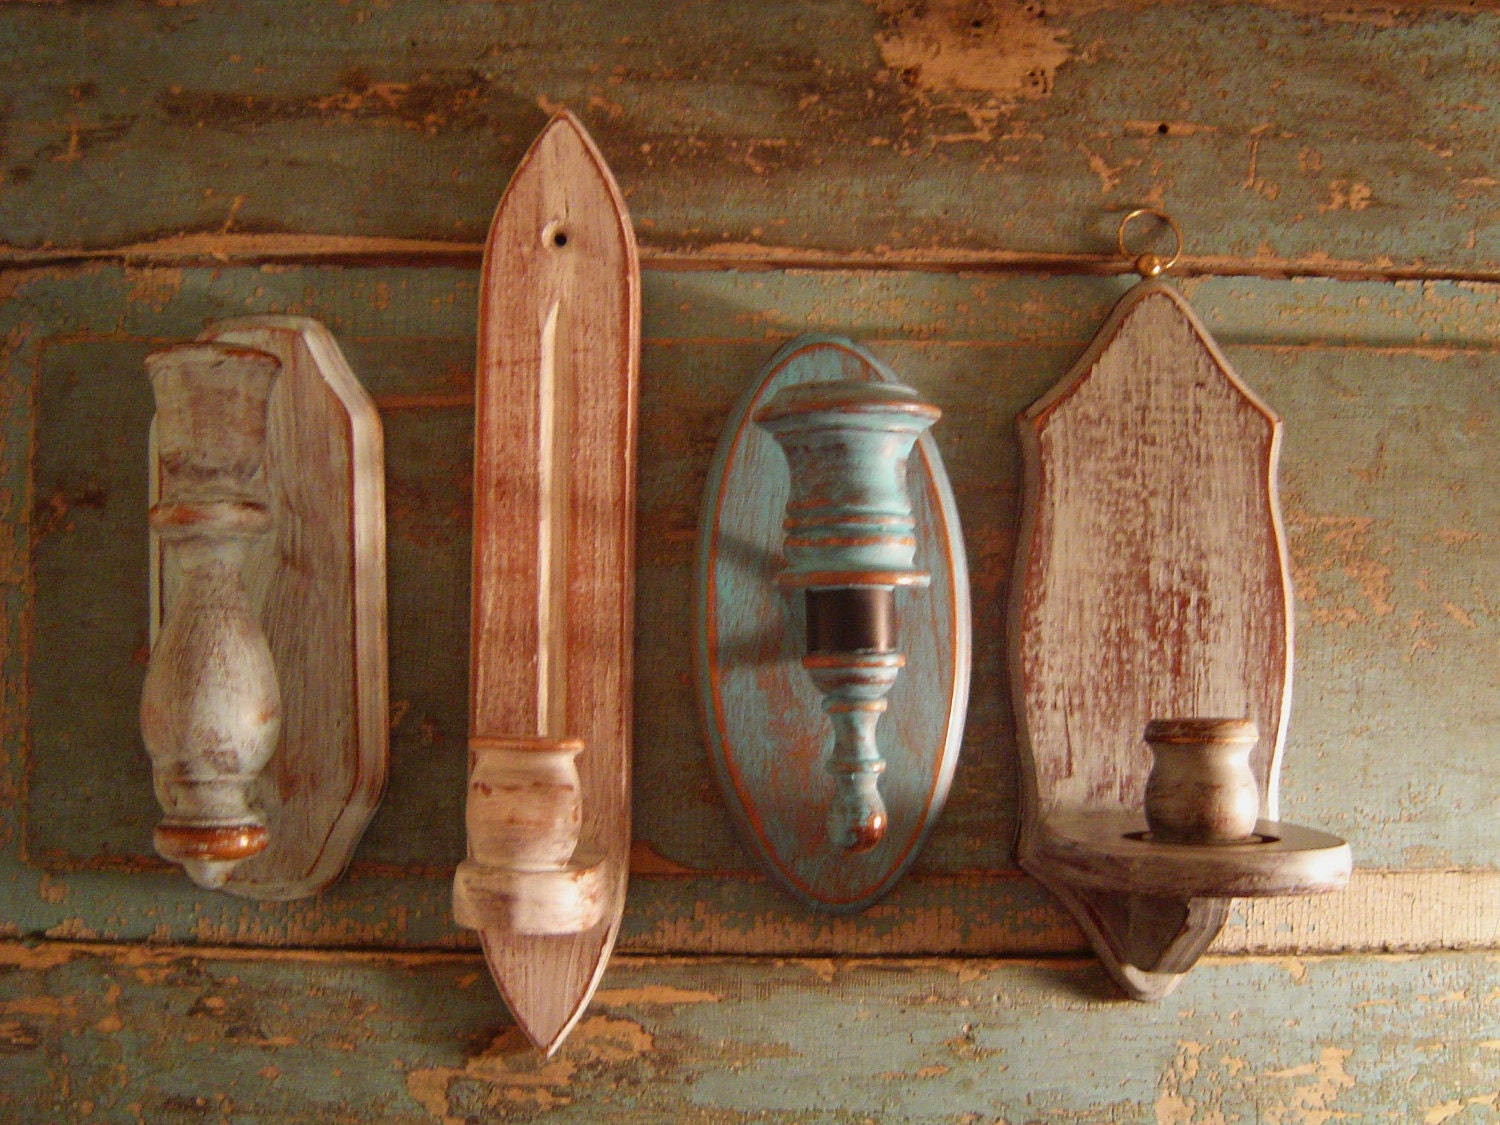 Wall Candle Sconces Wood : Candle Holder Wall Sconces Wood Distressed Cloudy Skies